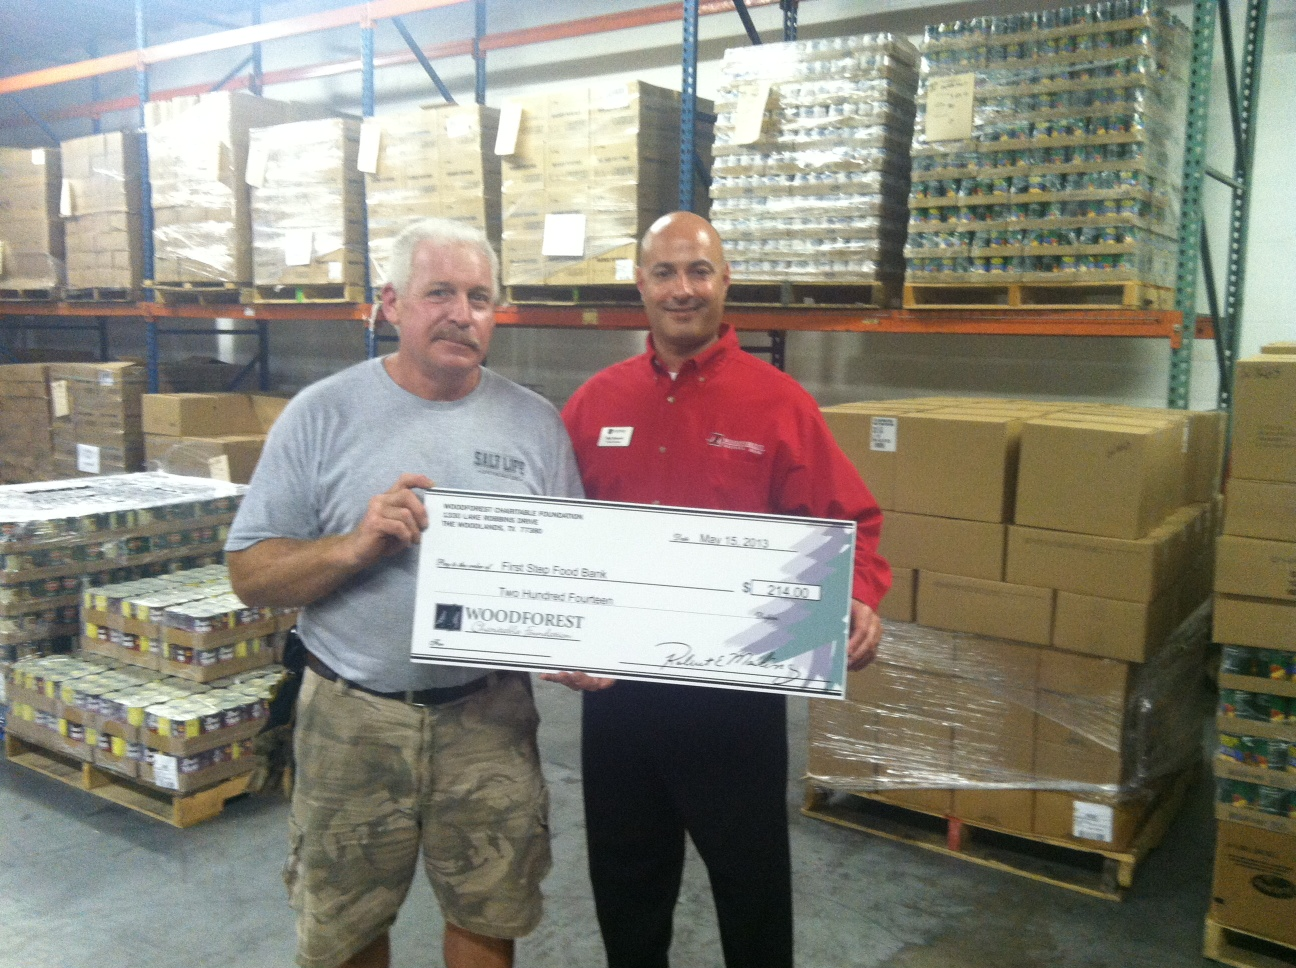 First Step Food Bank receives $214 donation from Woodforest Charitable Foundation.